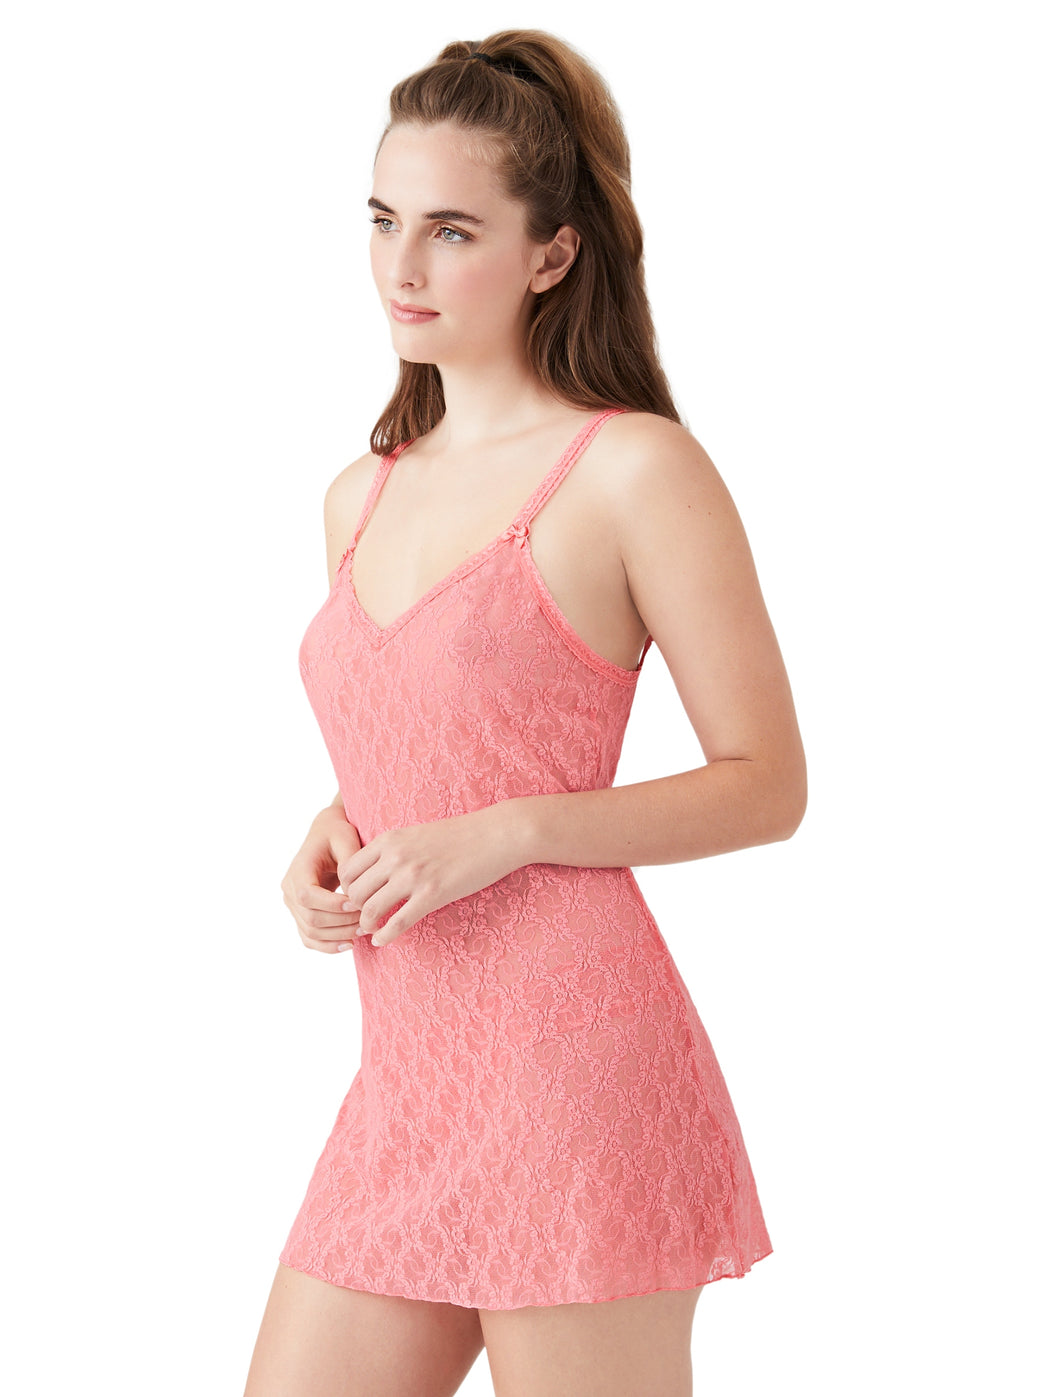 Lace Kiss Chemise in Tea Rose